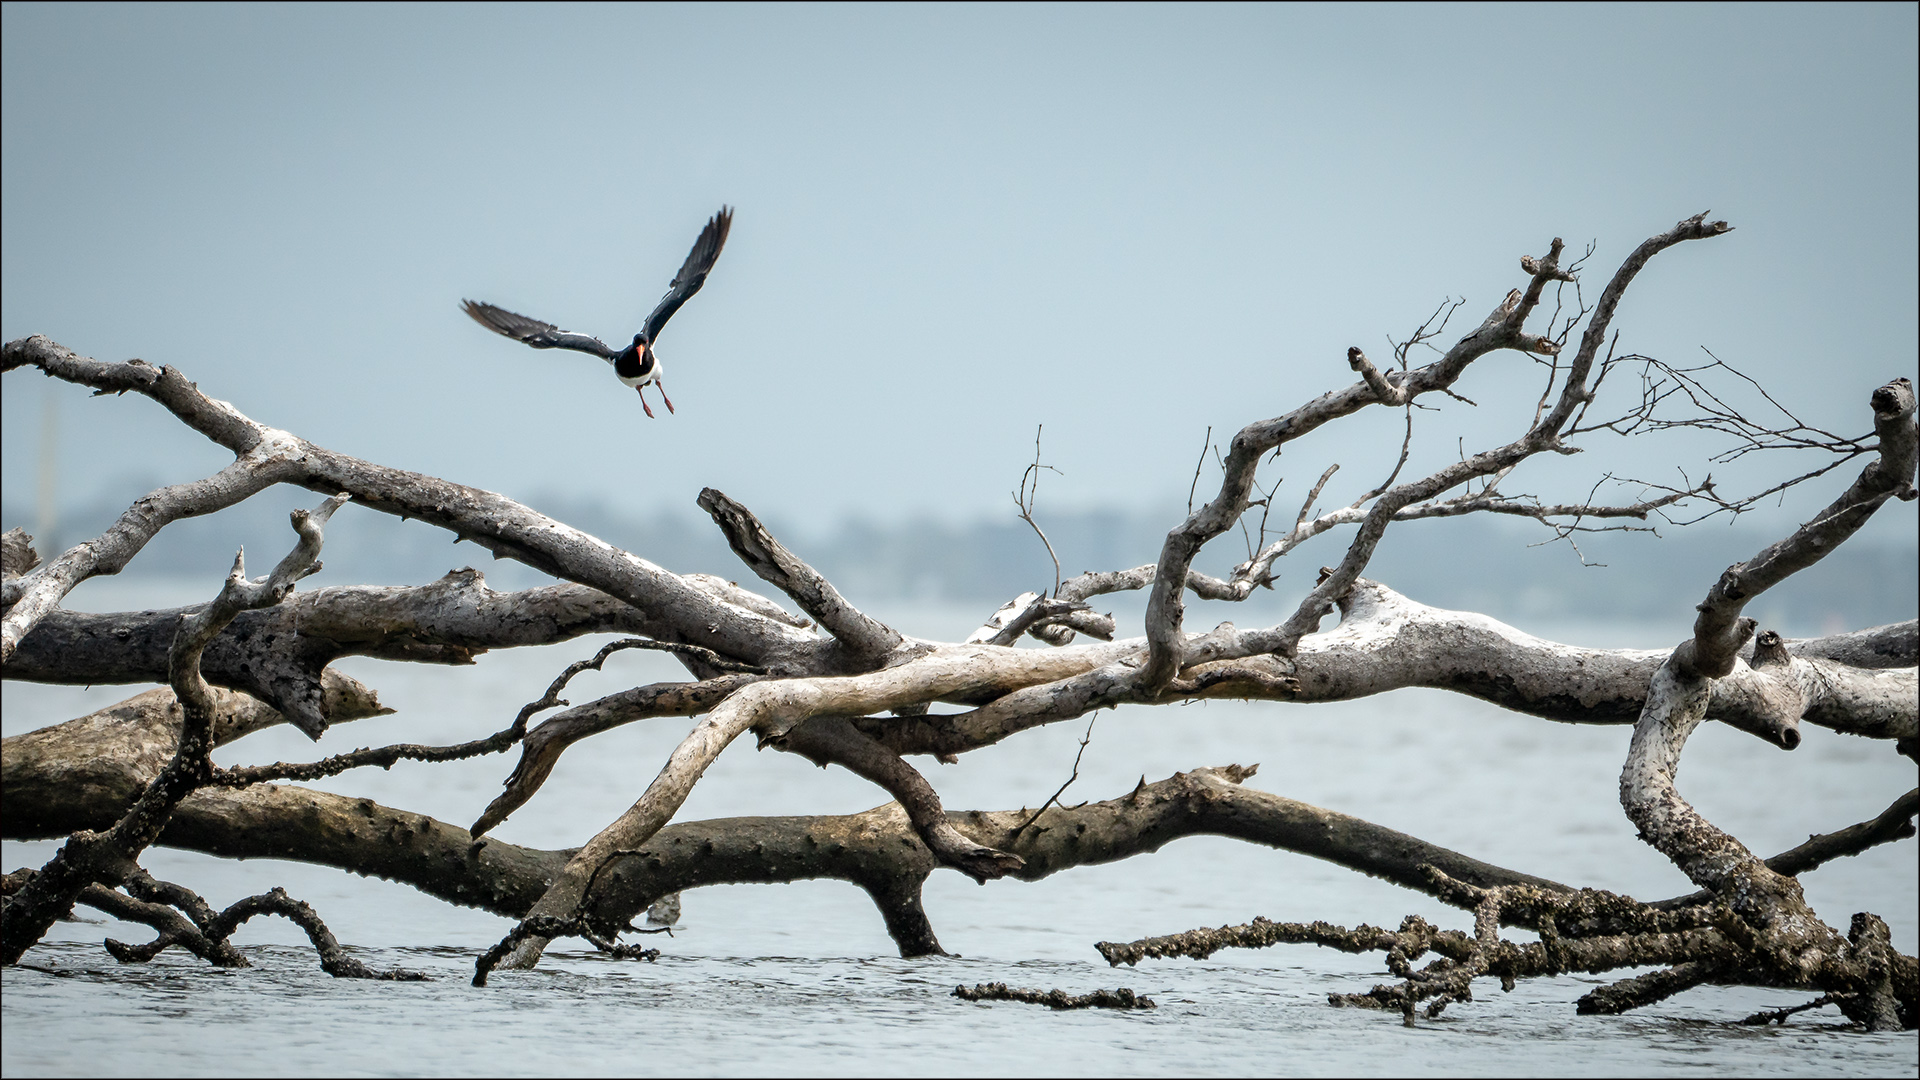 Open_Coming in to land - Pied Oystercatcher_Anne Pappalardo_Agr_Merit